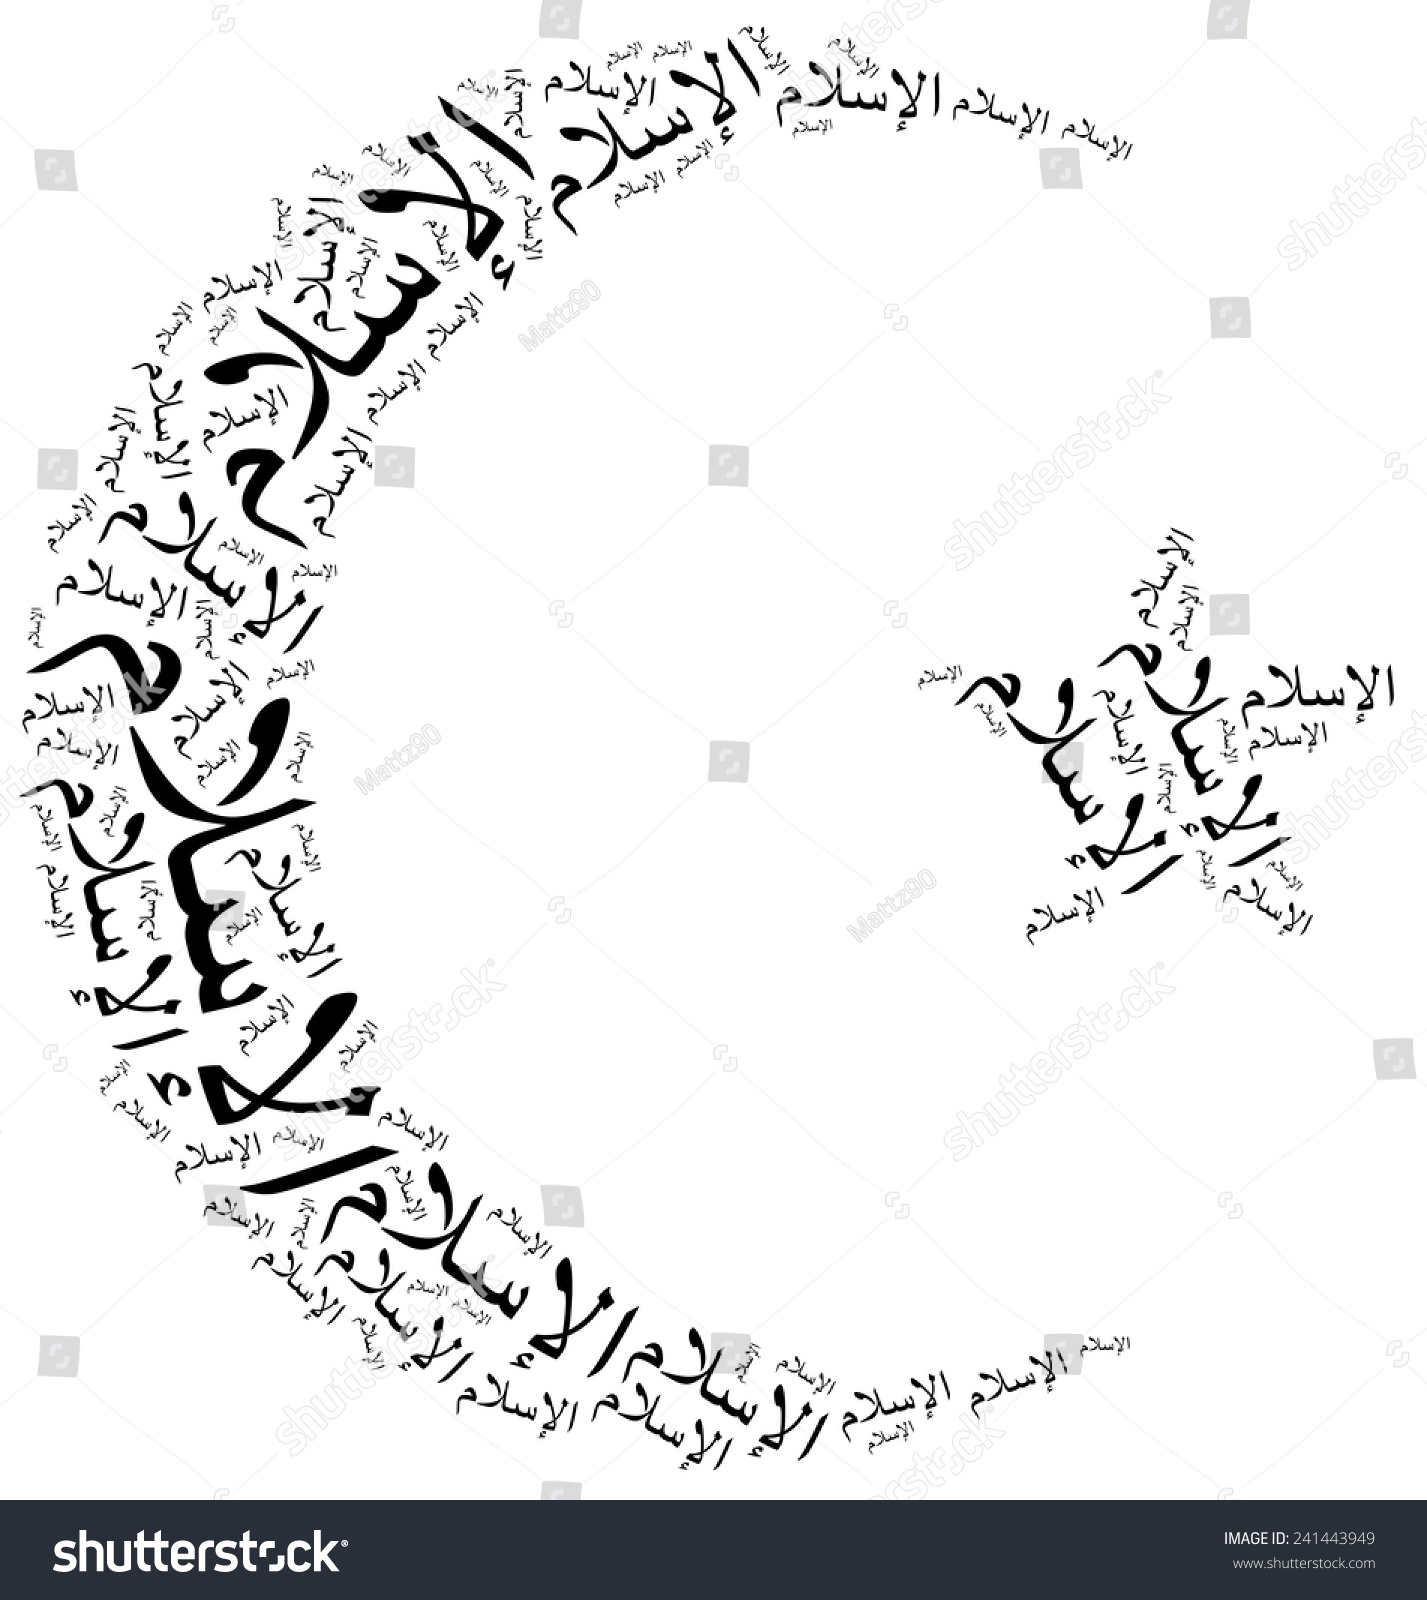 Symbol Islam Religion Word Cloud Illustration Stock Illustration